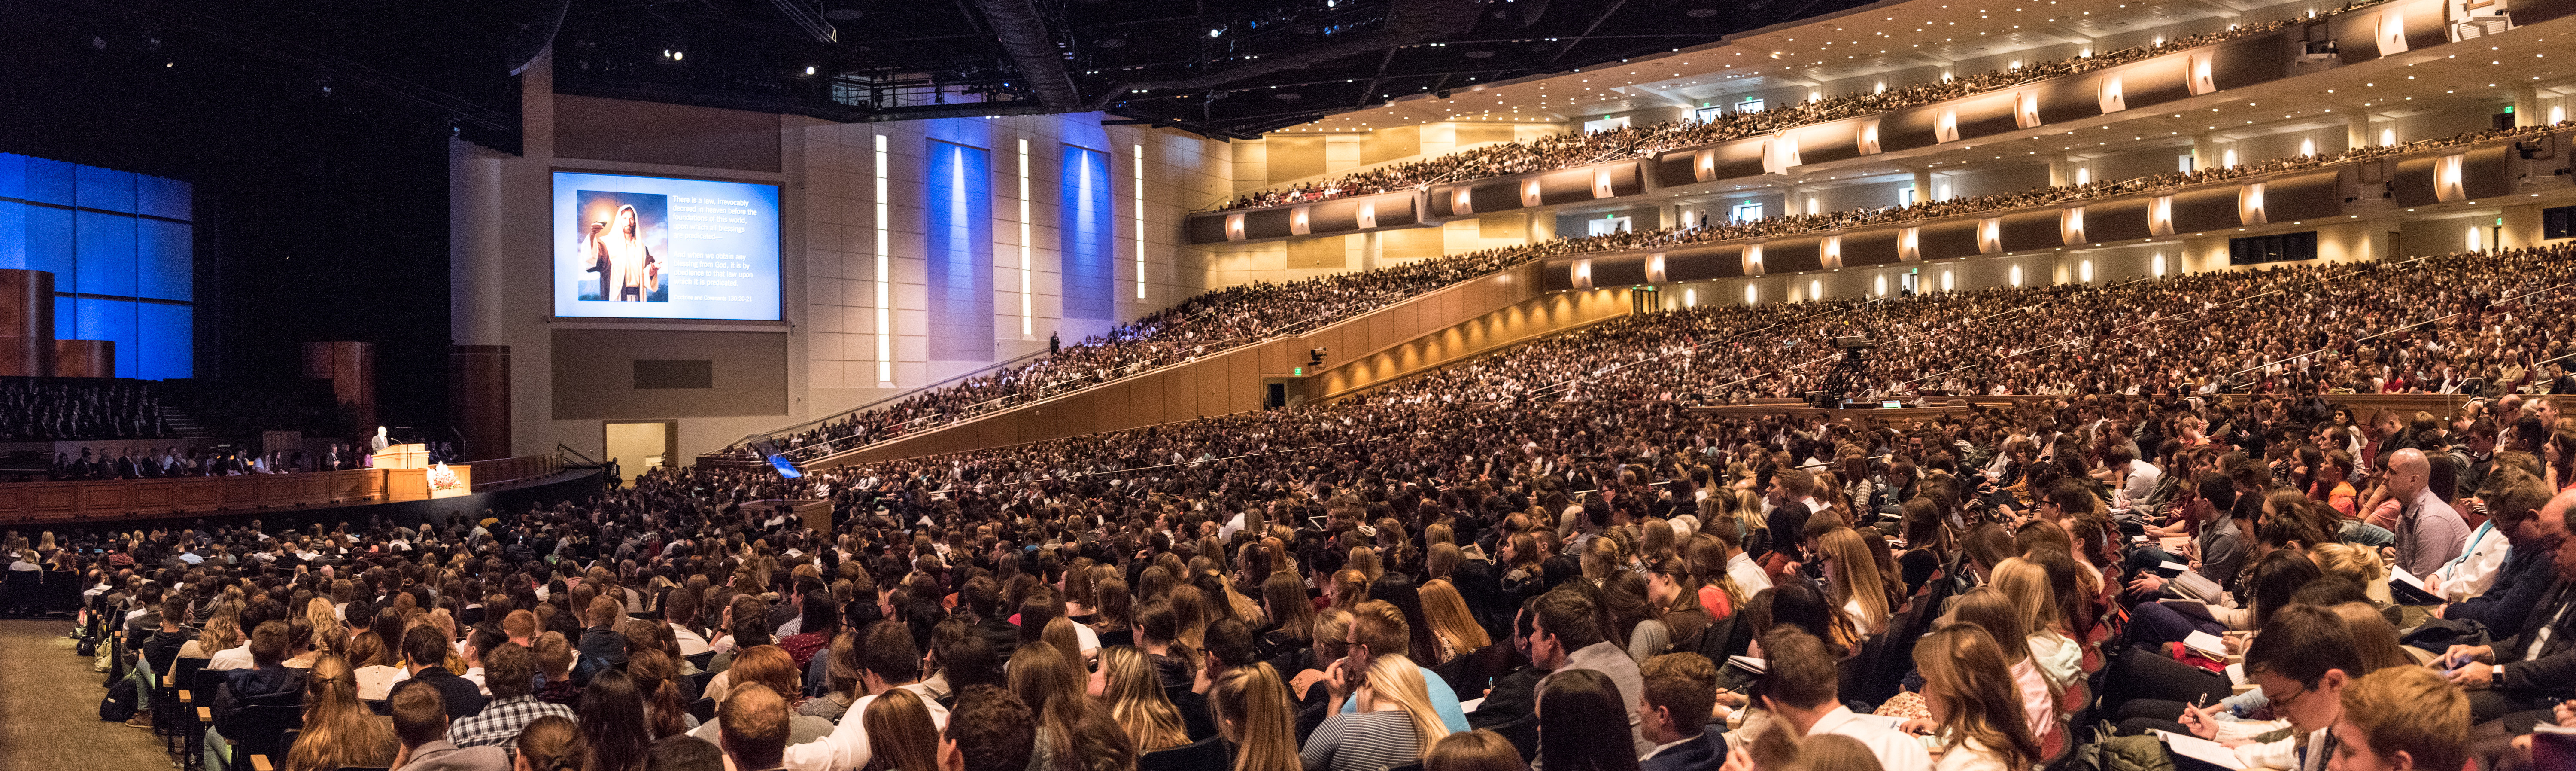 BYU-Idaho students gather to hear the words of President Dallin H. Oaks of the First Presidency during a BYU-Idaho campus devotional on Oct. 30.